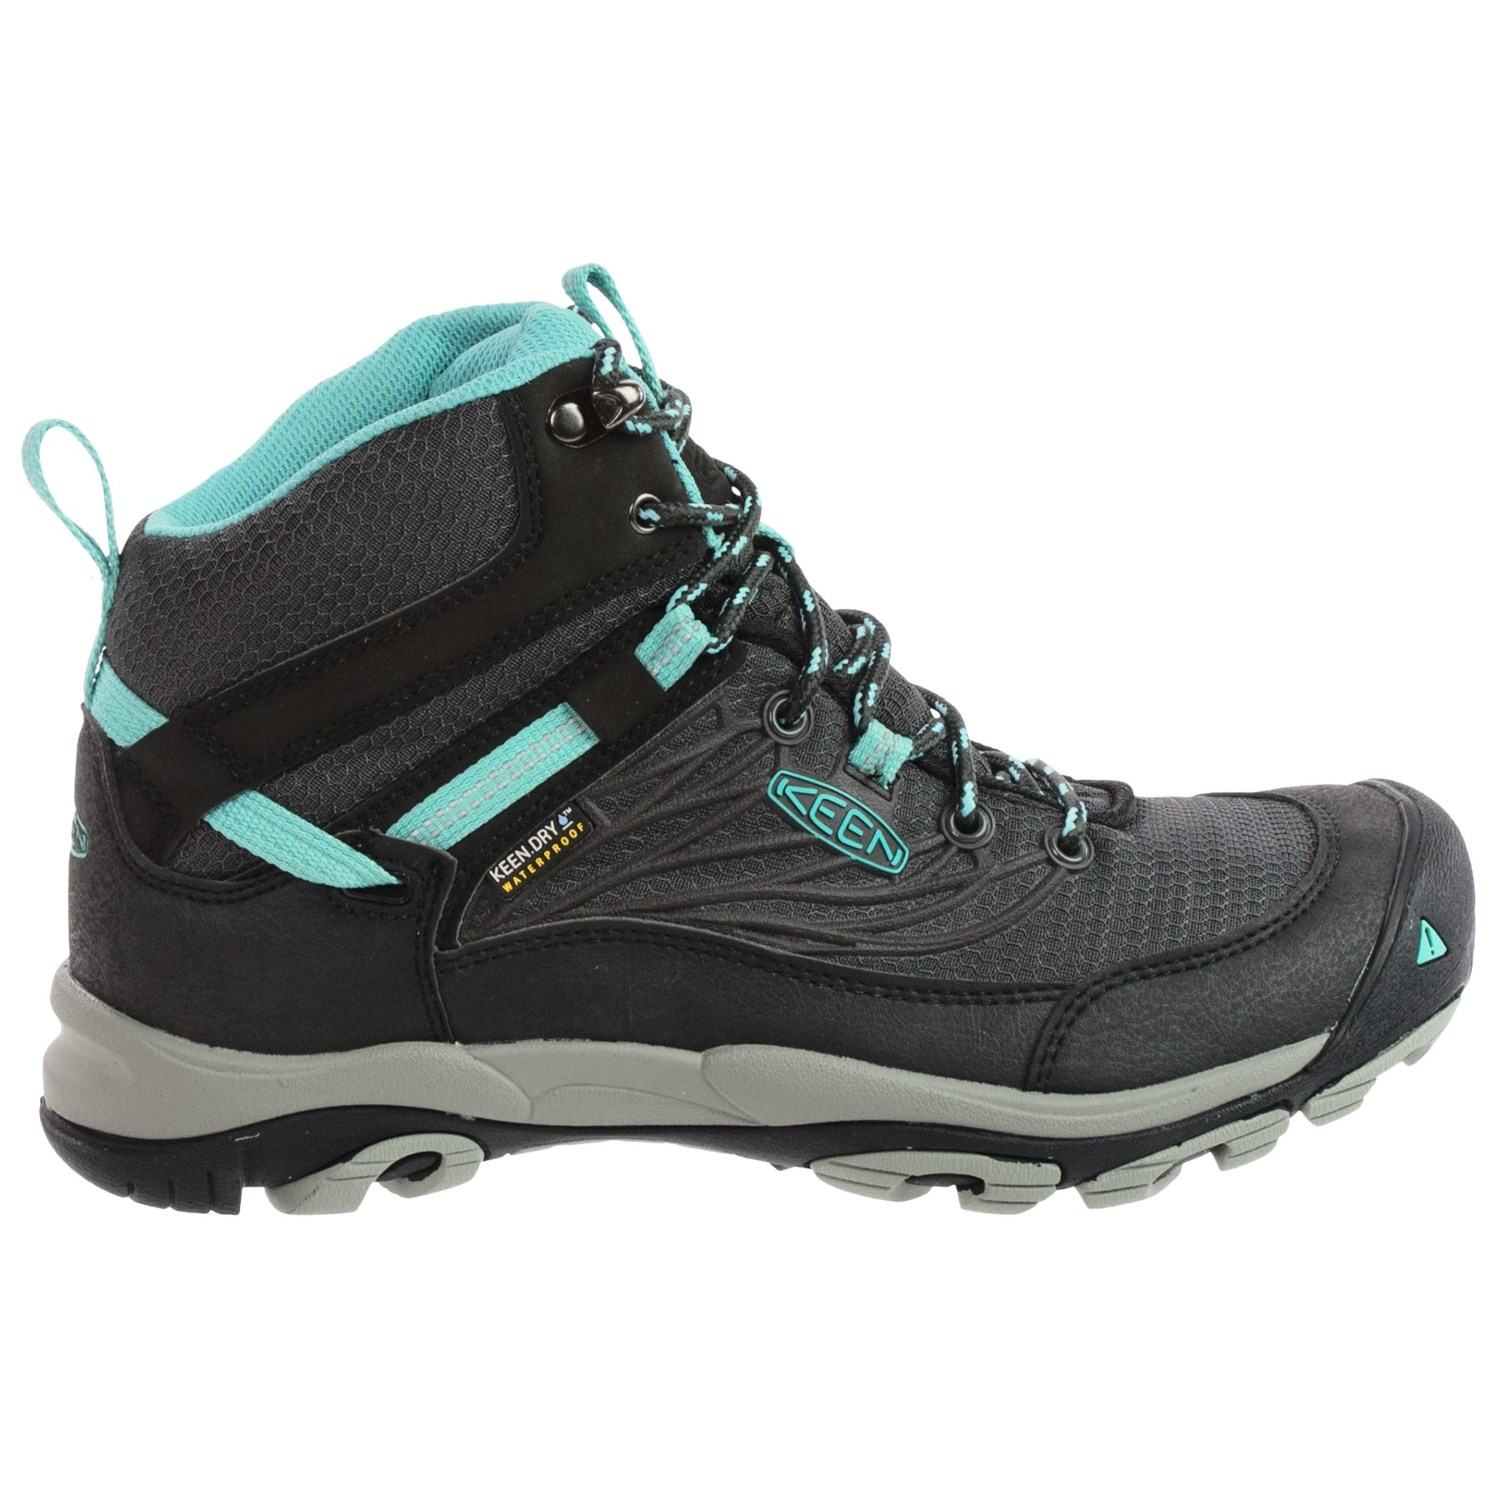 Creative Keen Marshall Mid Hiking Boots (For Women) 7197N - Save 47%